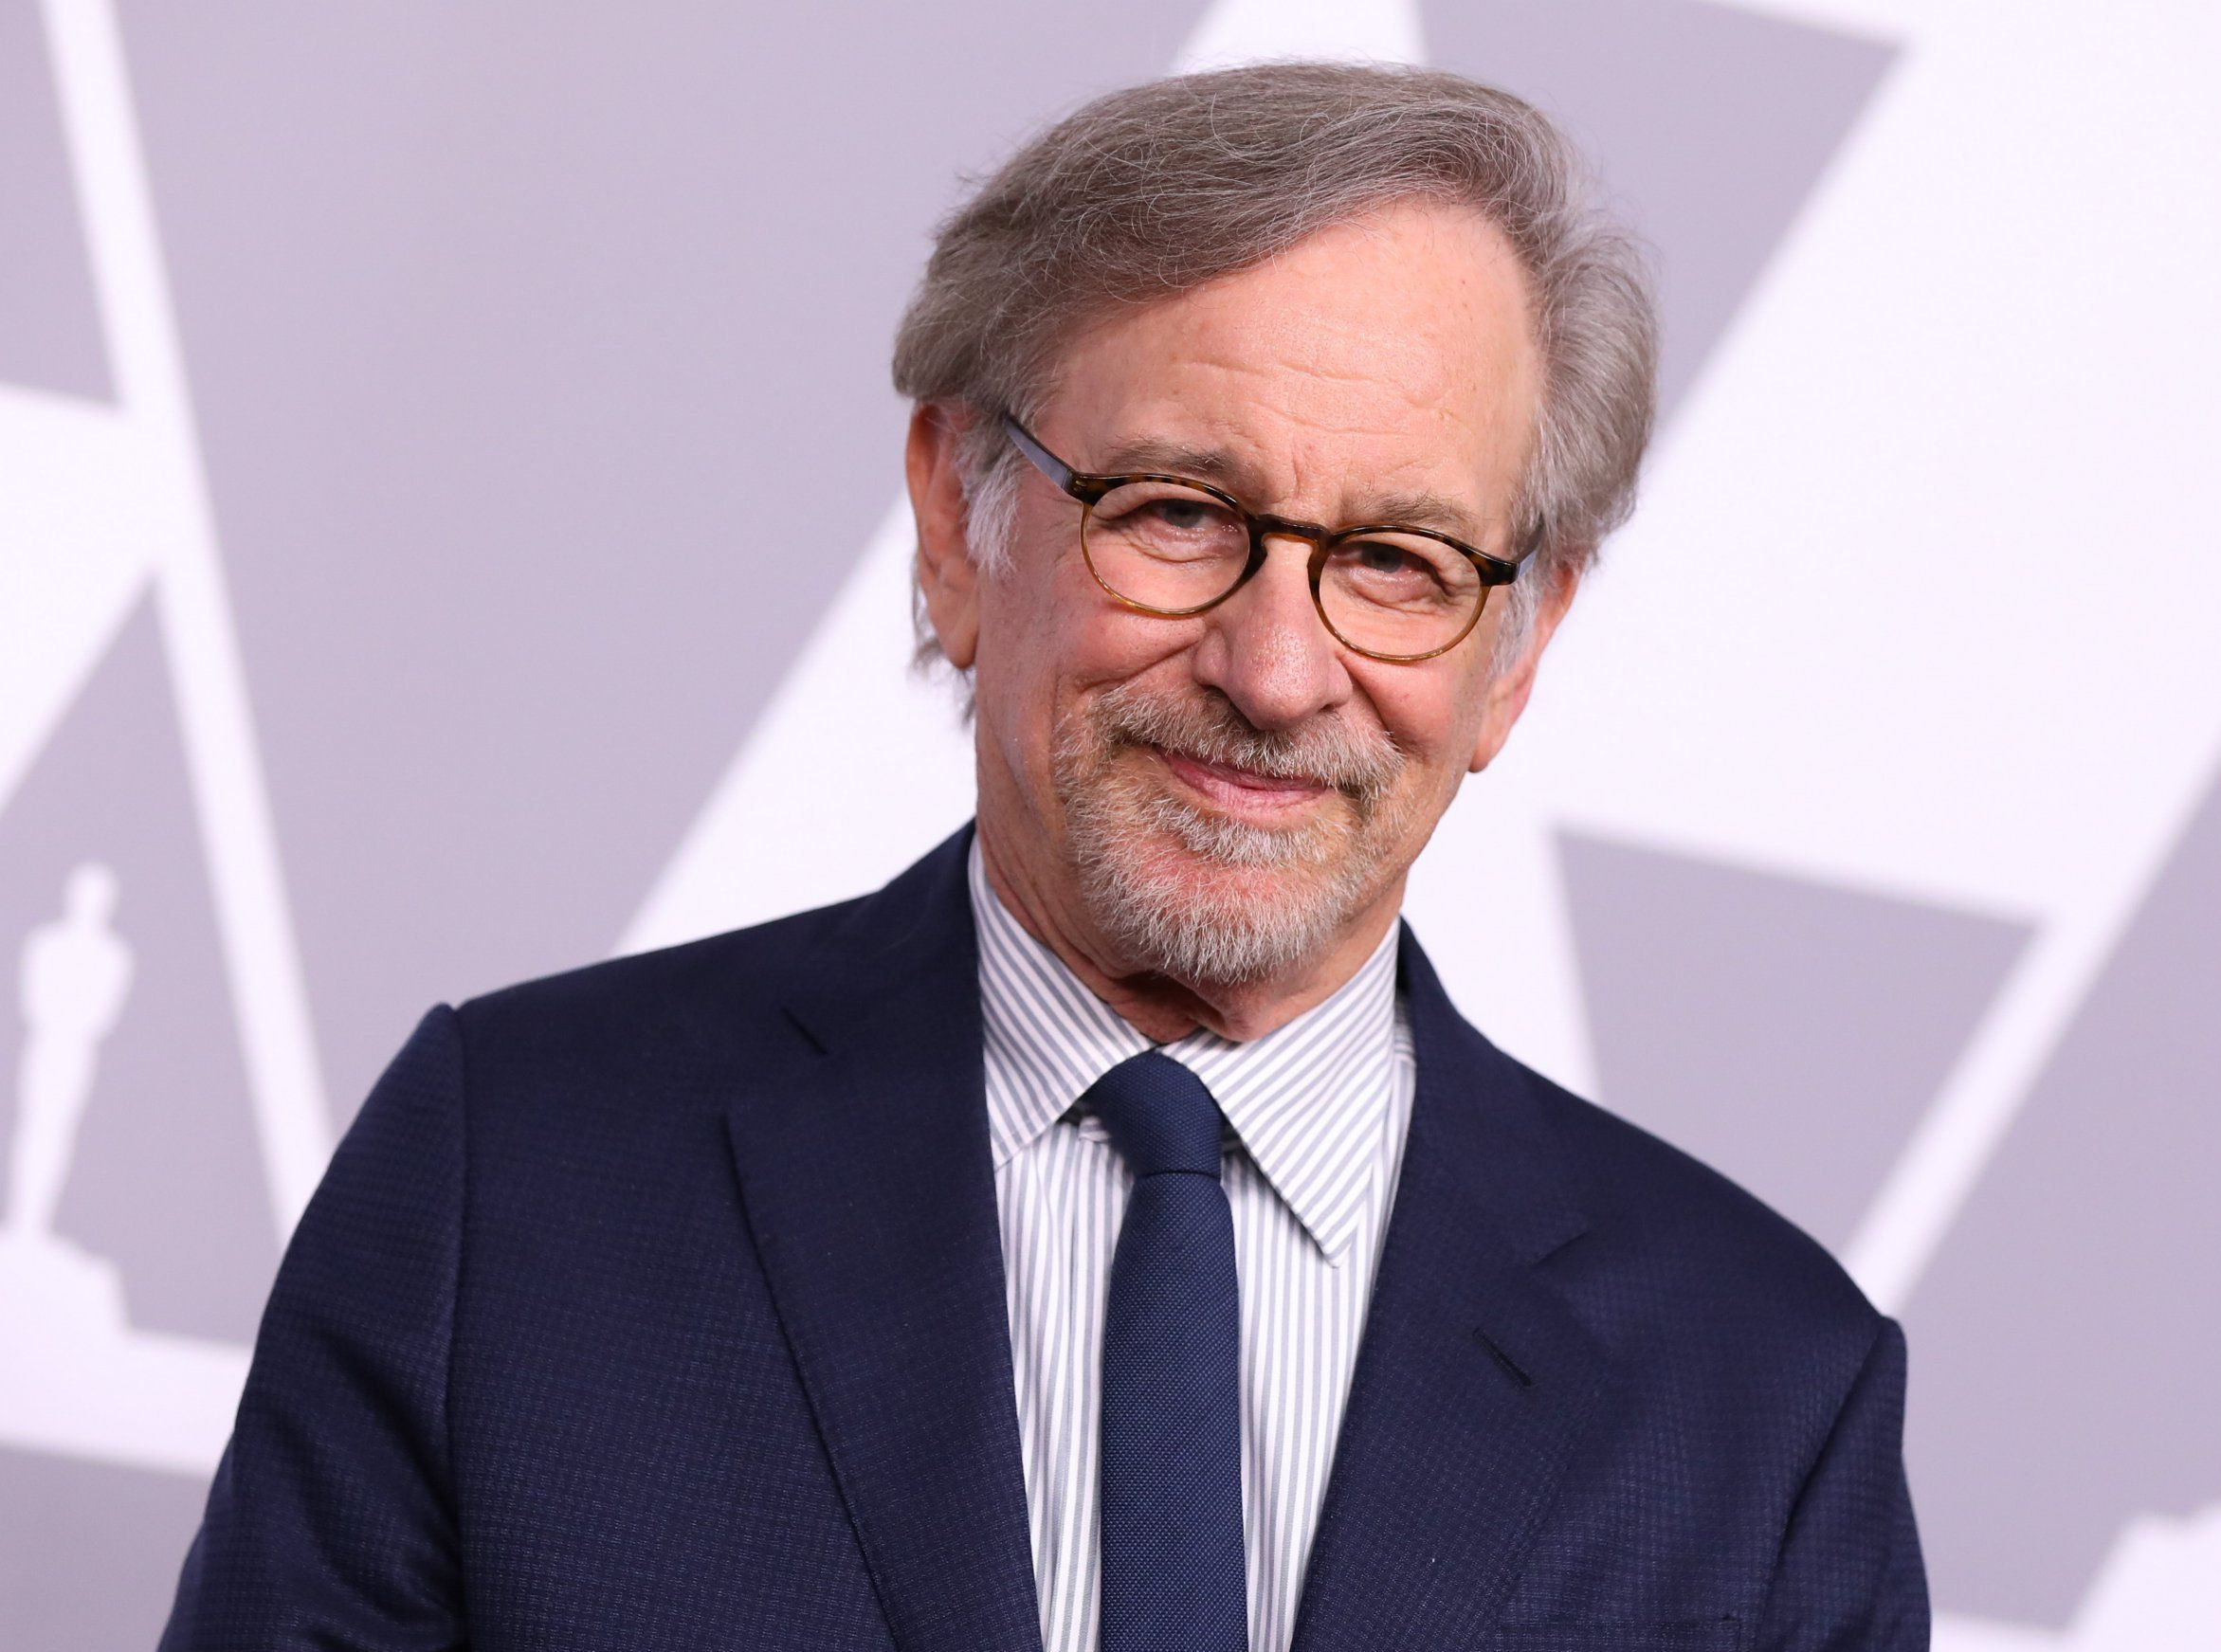 Steven Spielberg doesn't want Netflix movies to be eligible for Oscars